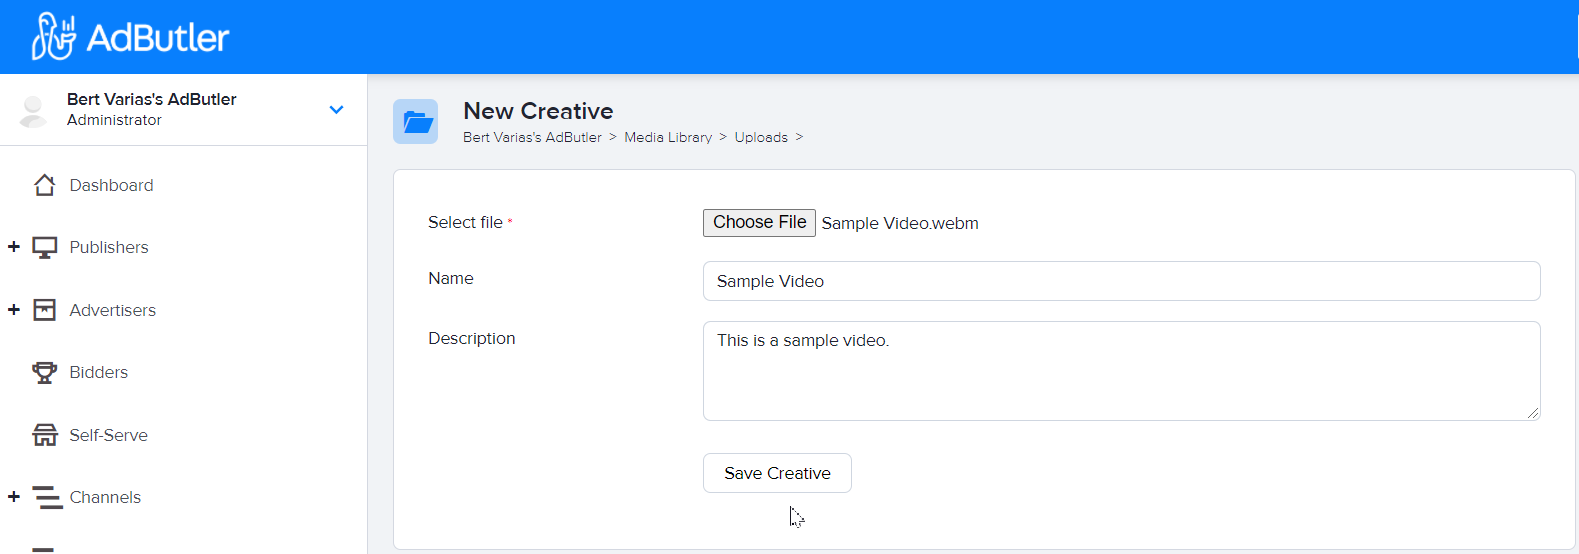 How to upload a video ad creative